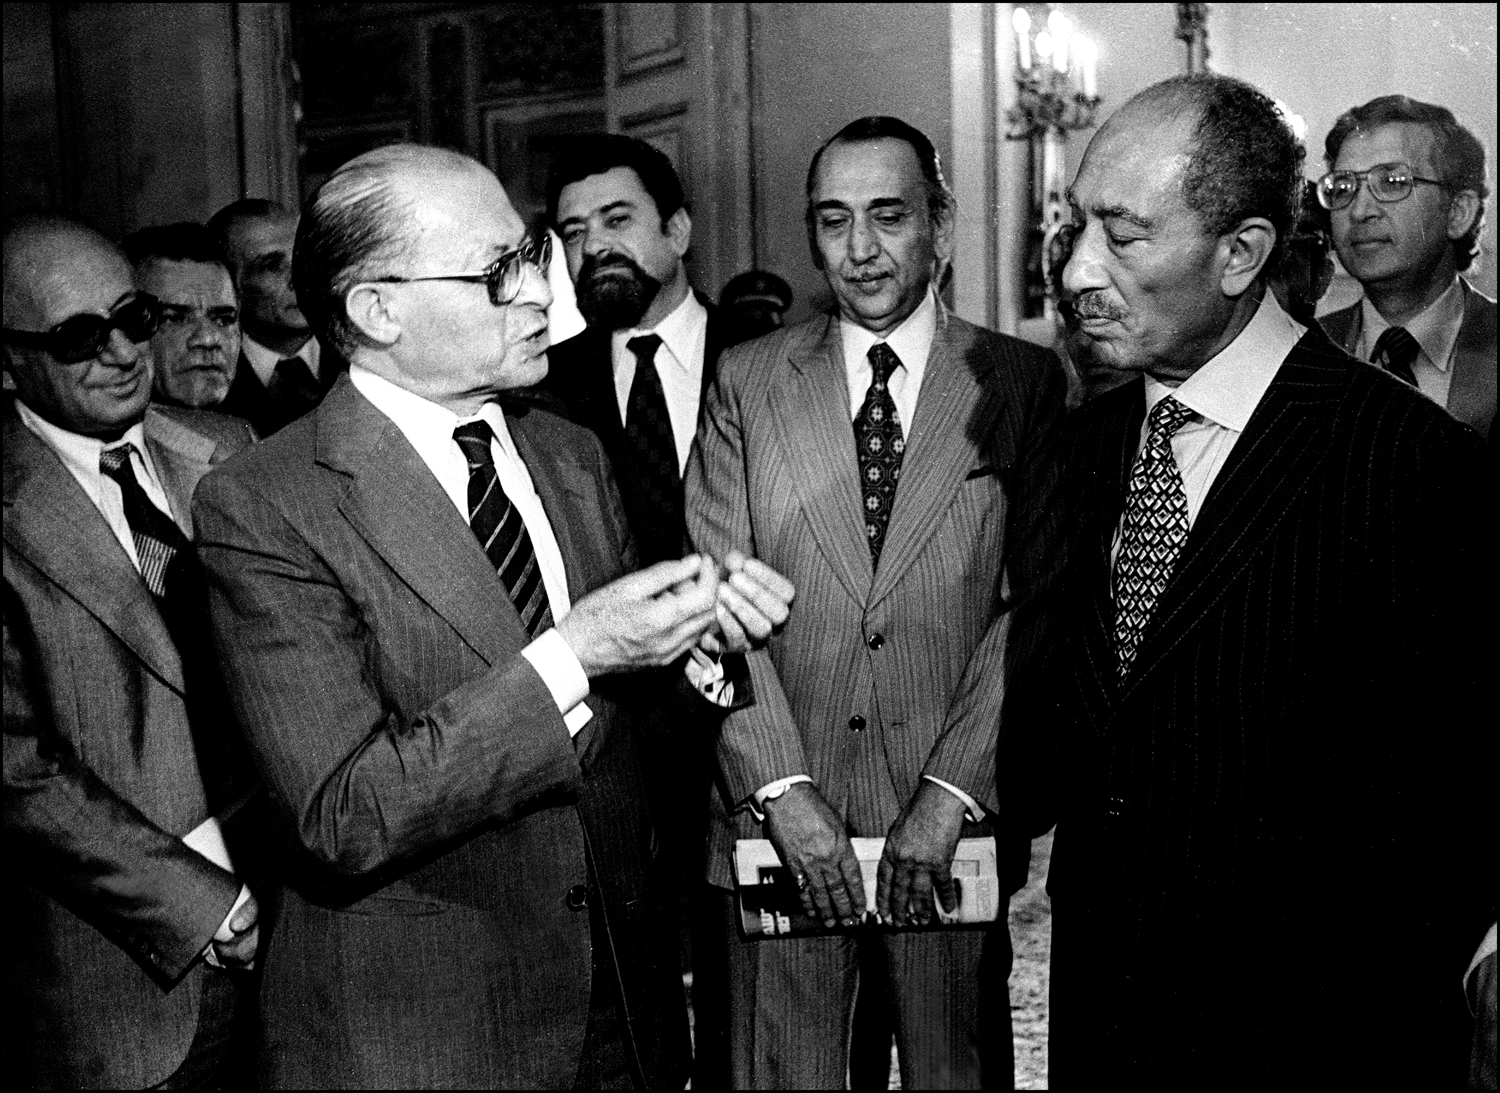 Egyptian President Anwar Sadat listens to Israeli Prime Minister Menachem Begin during press conference at the Egyptian Foreign Ministry, Cairo. : Sadat-Mubarak 1978-1981 : BILL FOLEY